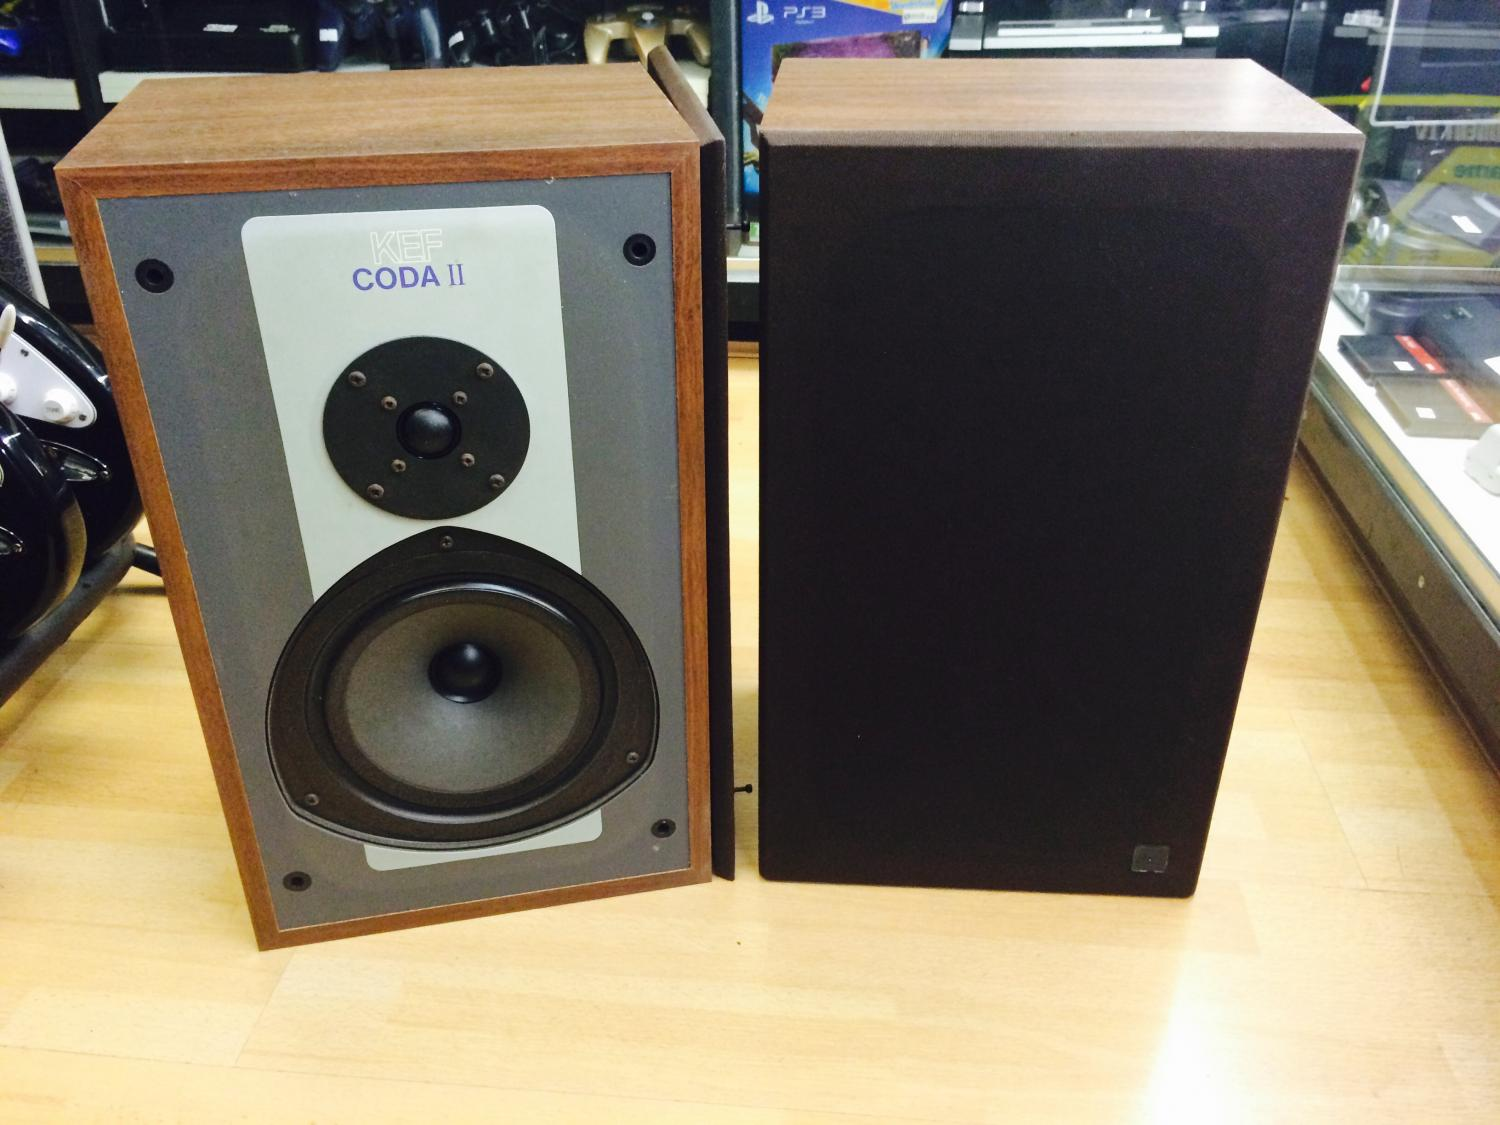 kef coda. picture of kef coda 2 kef